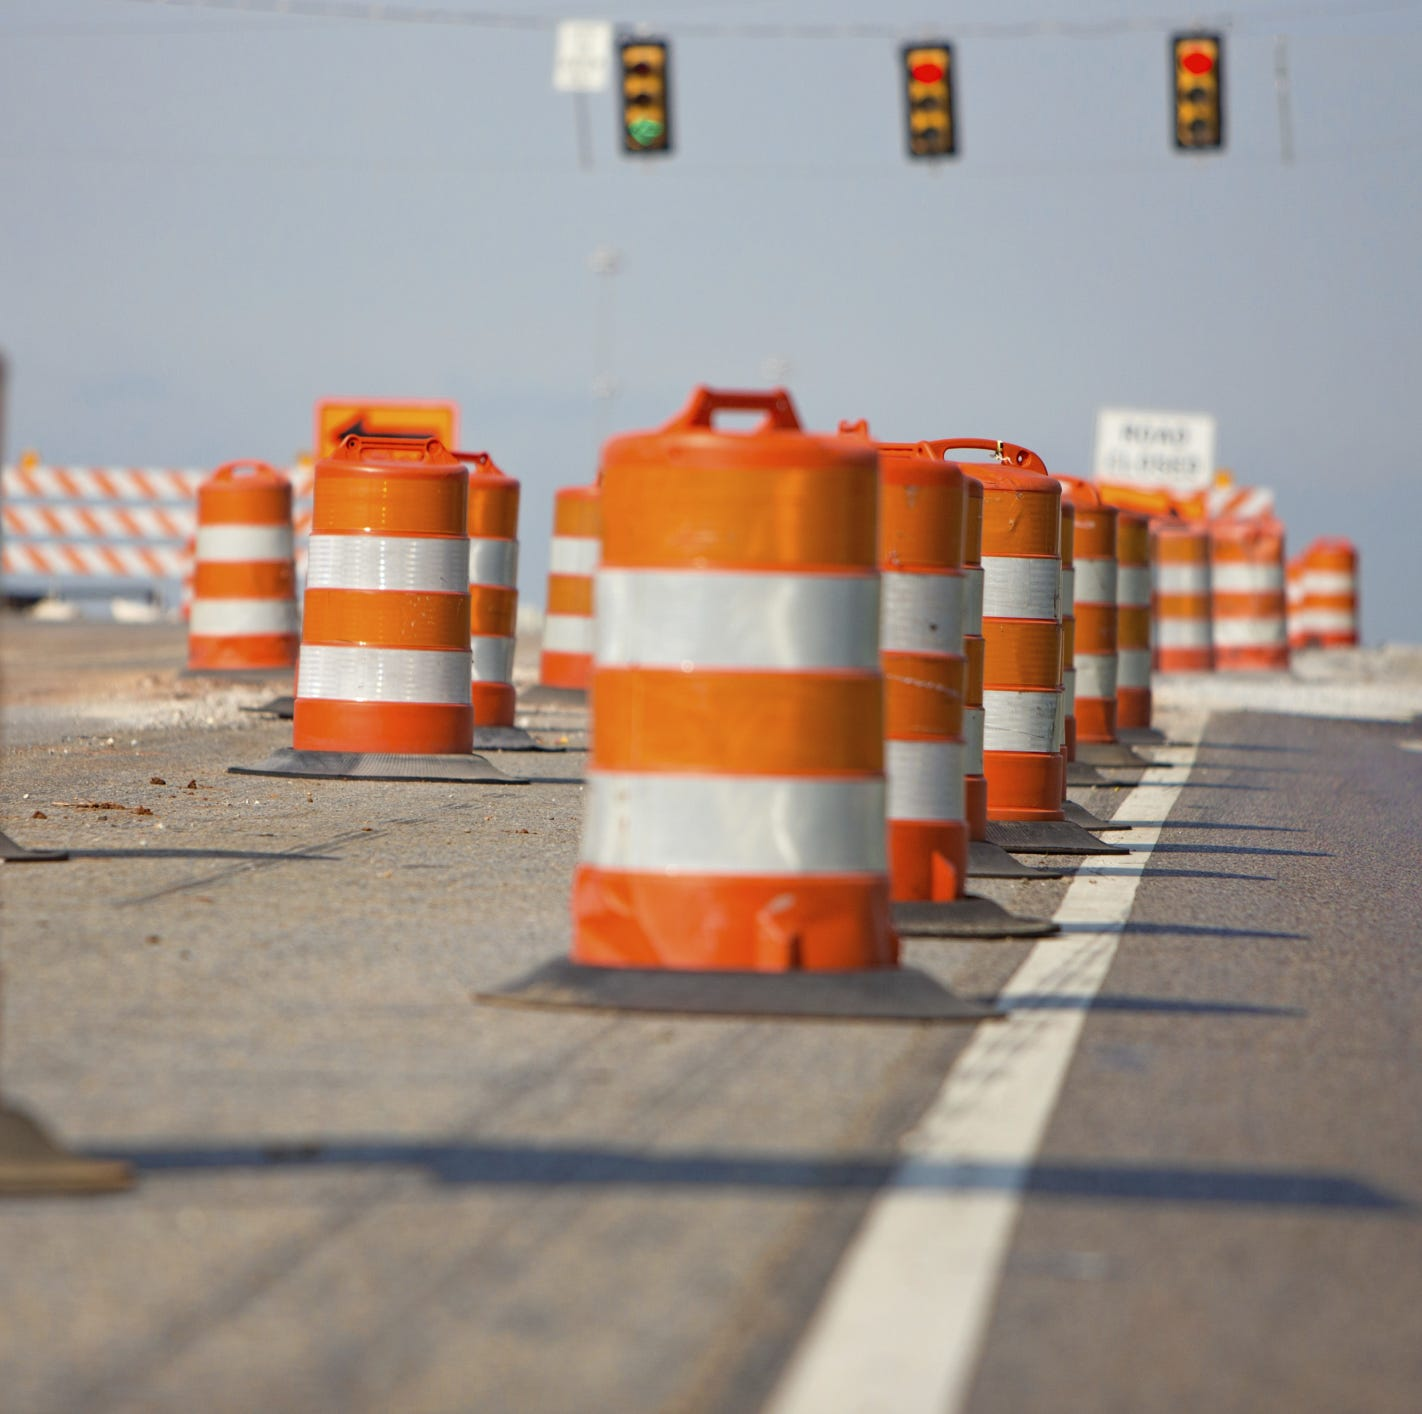 Massive road work project is going to cause delays on I-275